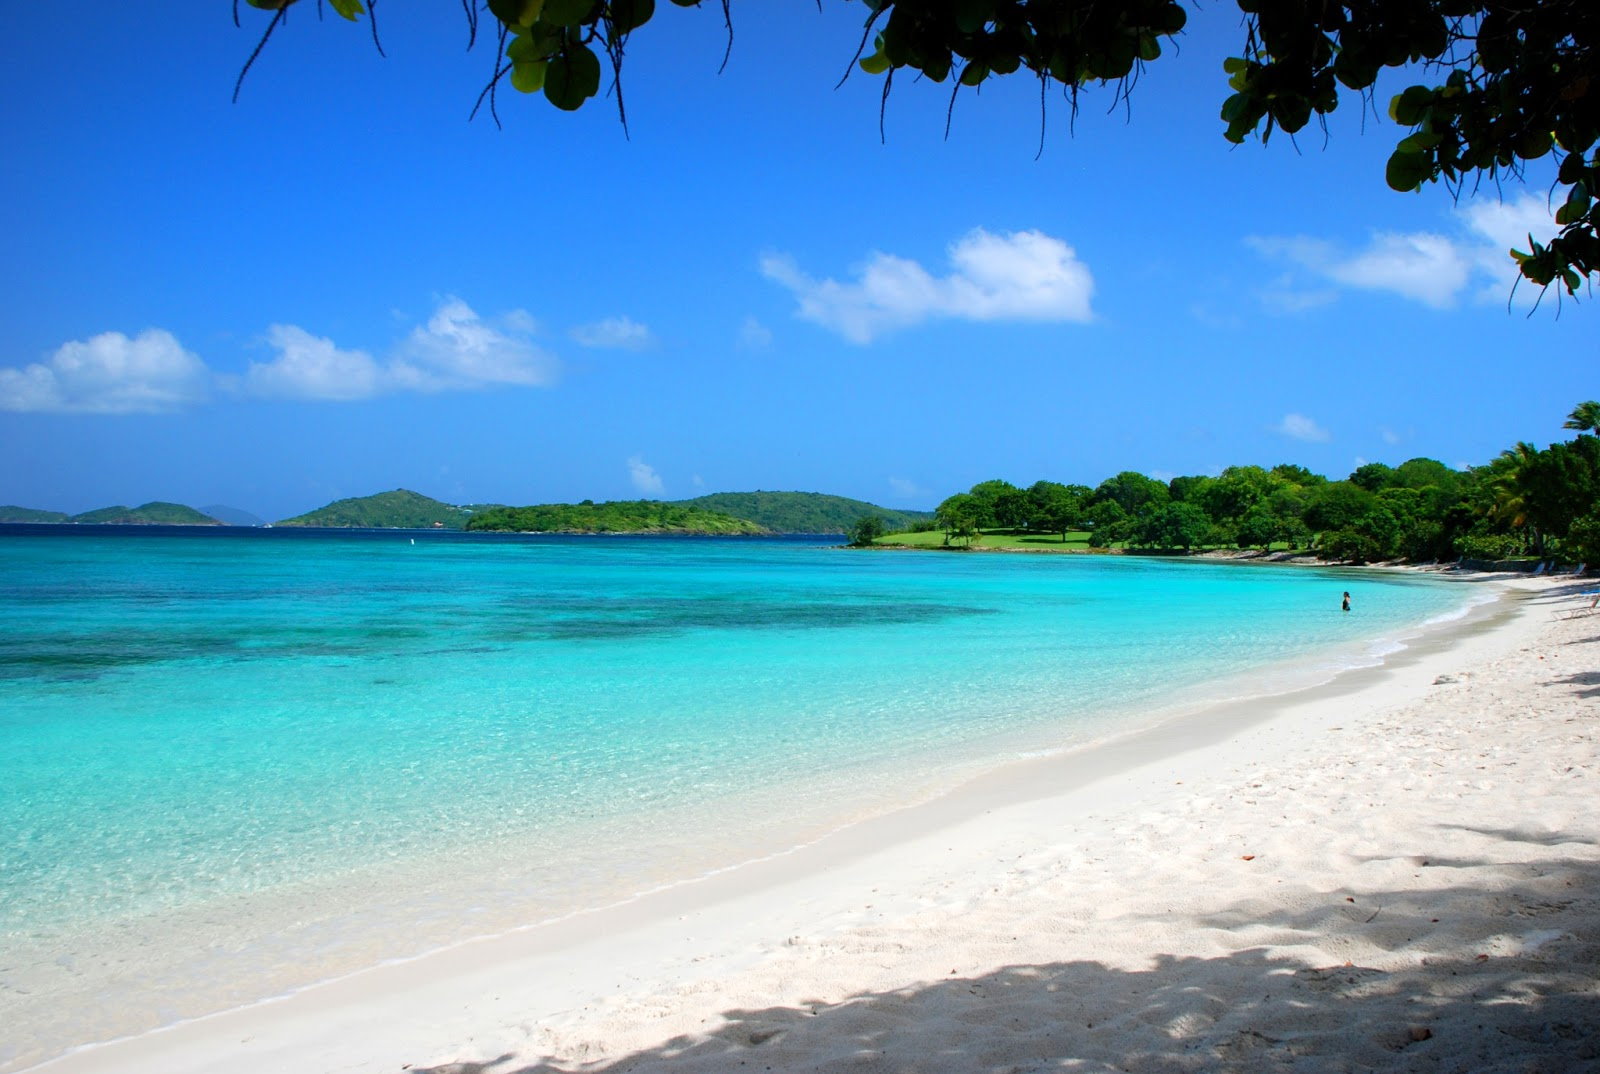 St john best island to spend vacations 2013 world for Top us beach vacations